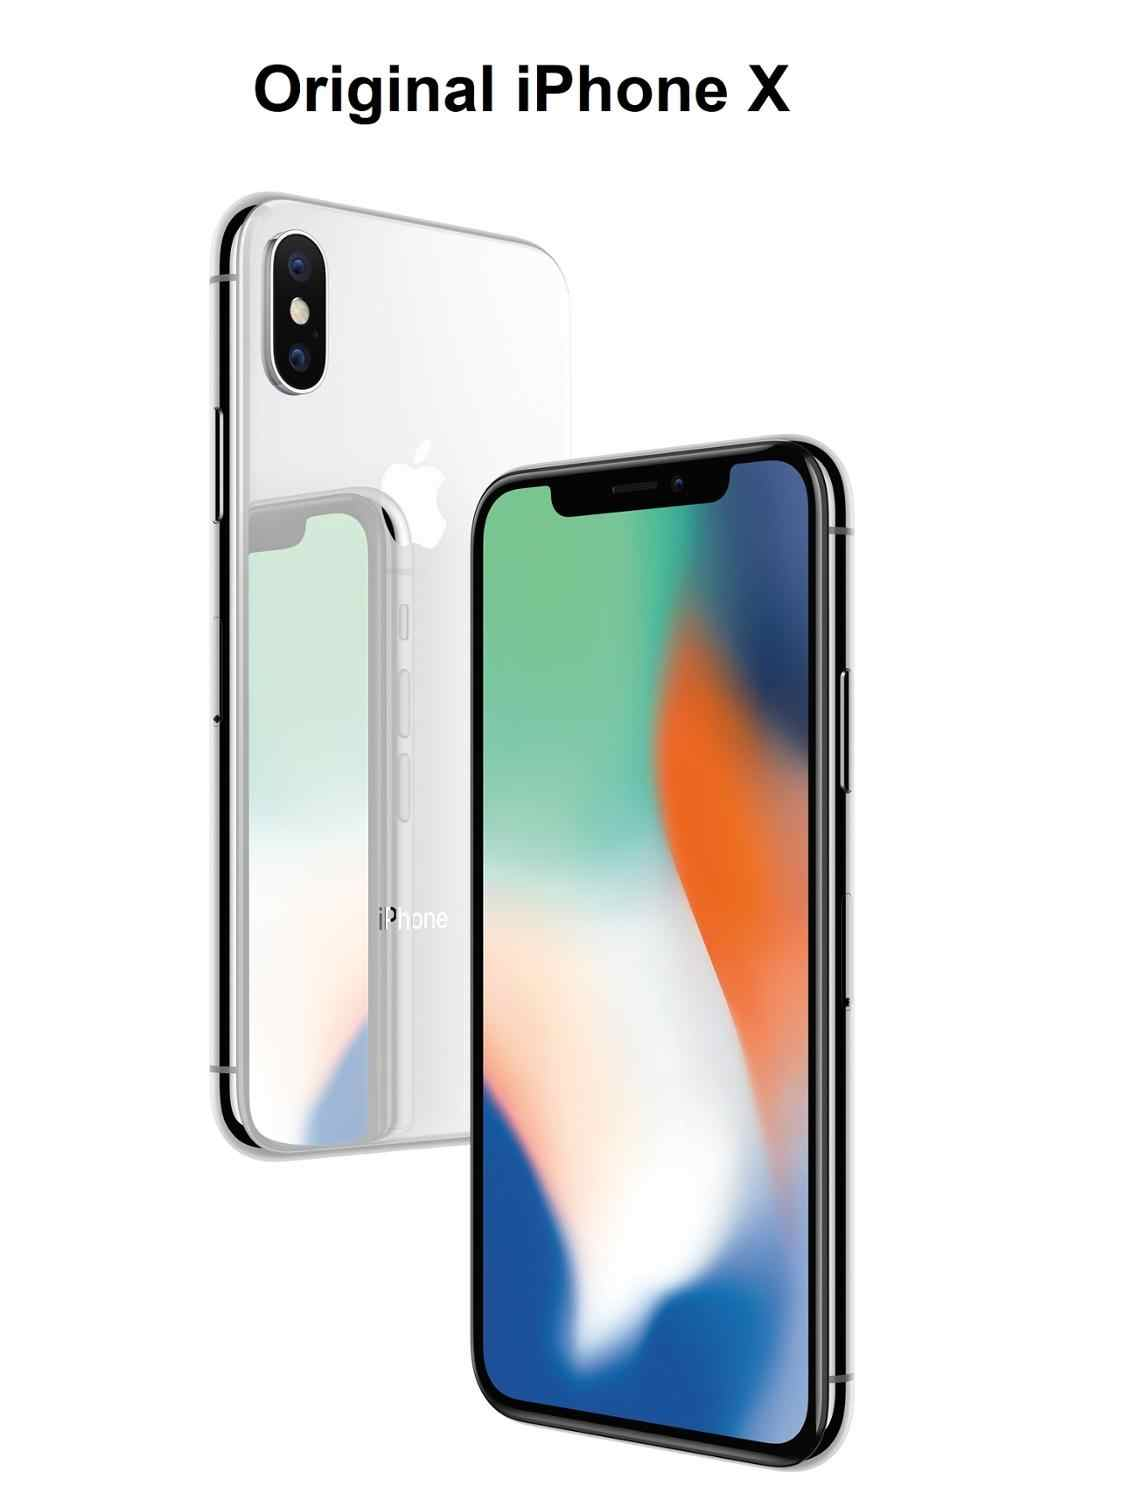 "Original Neue iPhone X 4G LTE FaceID Alle Bildschirm 5.8 ""OLED Super Retina Dispay IOS Smart Telefon IP68 wasserdichte Mi"